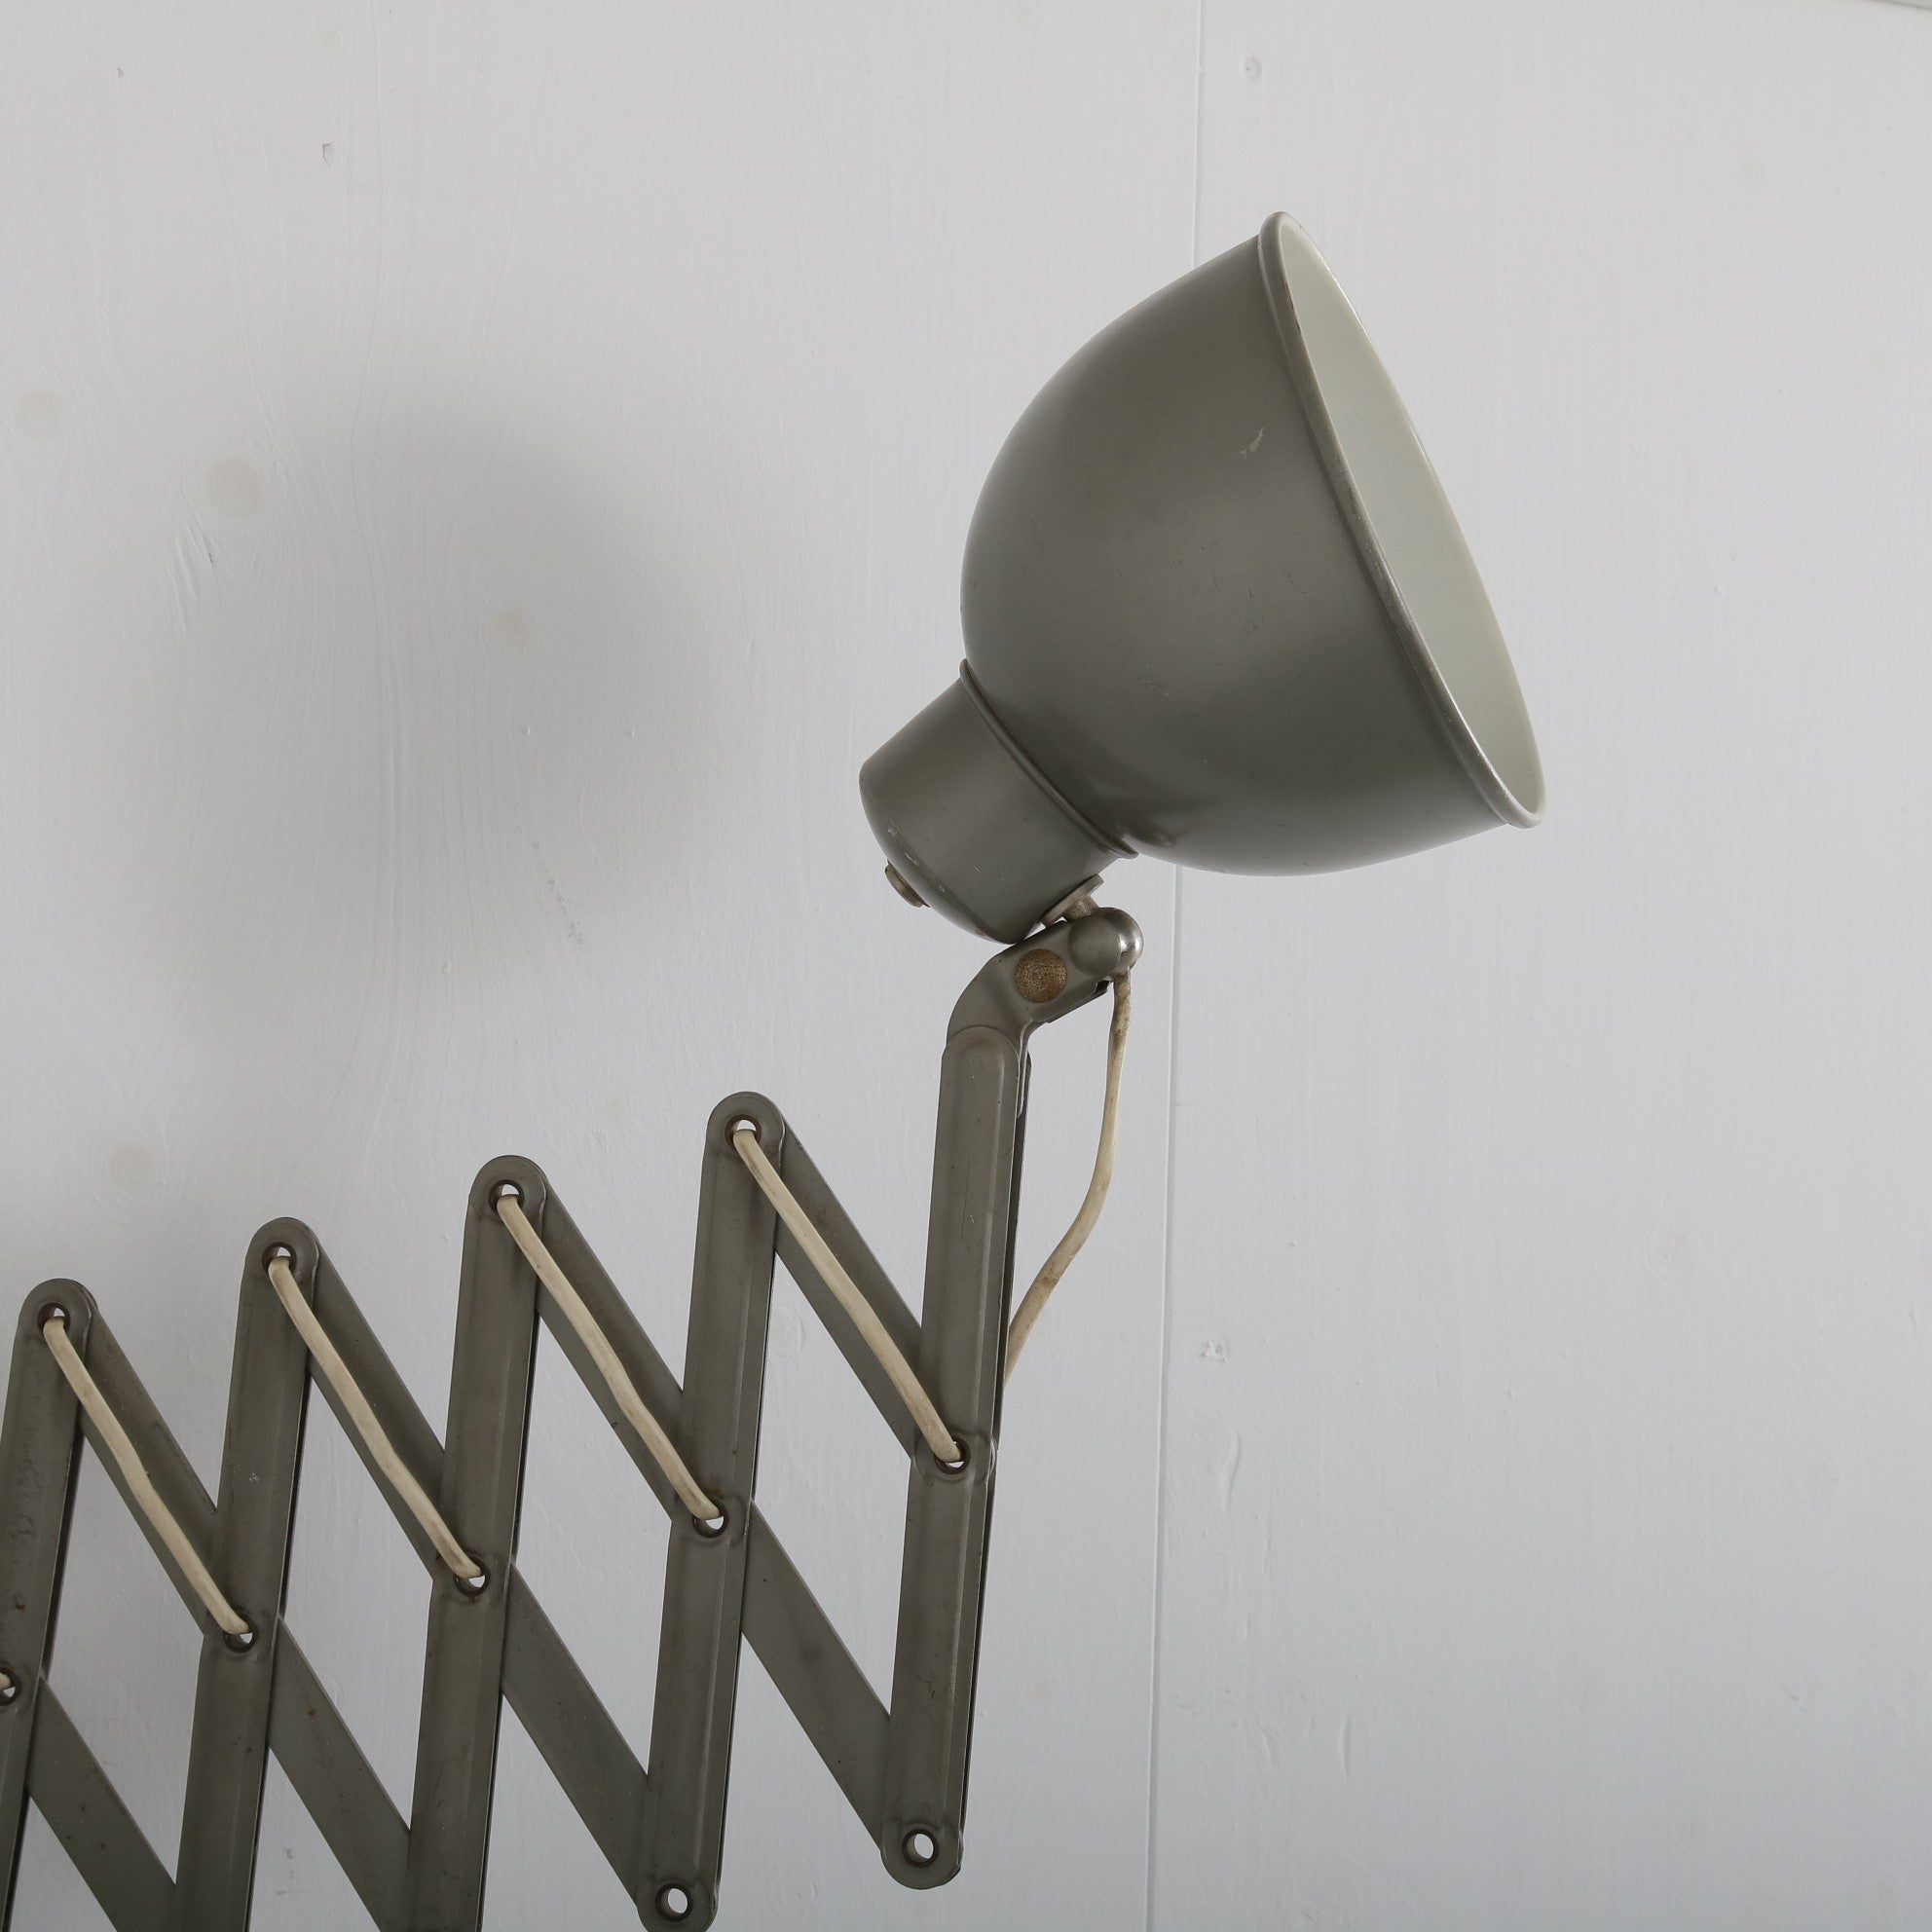 Tweedehands design 1950s Industrial scissor lamp manufactured in Germany